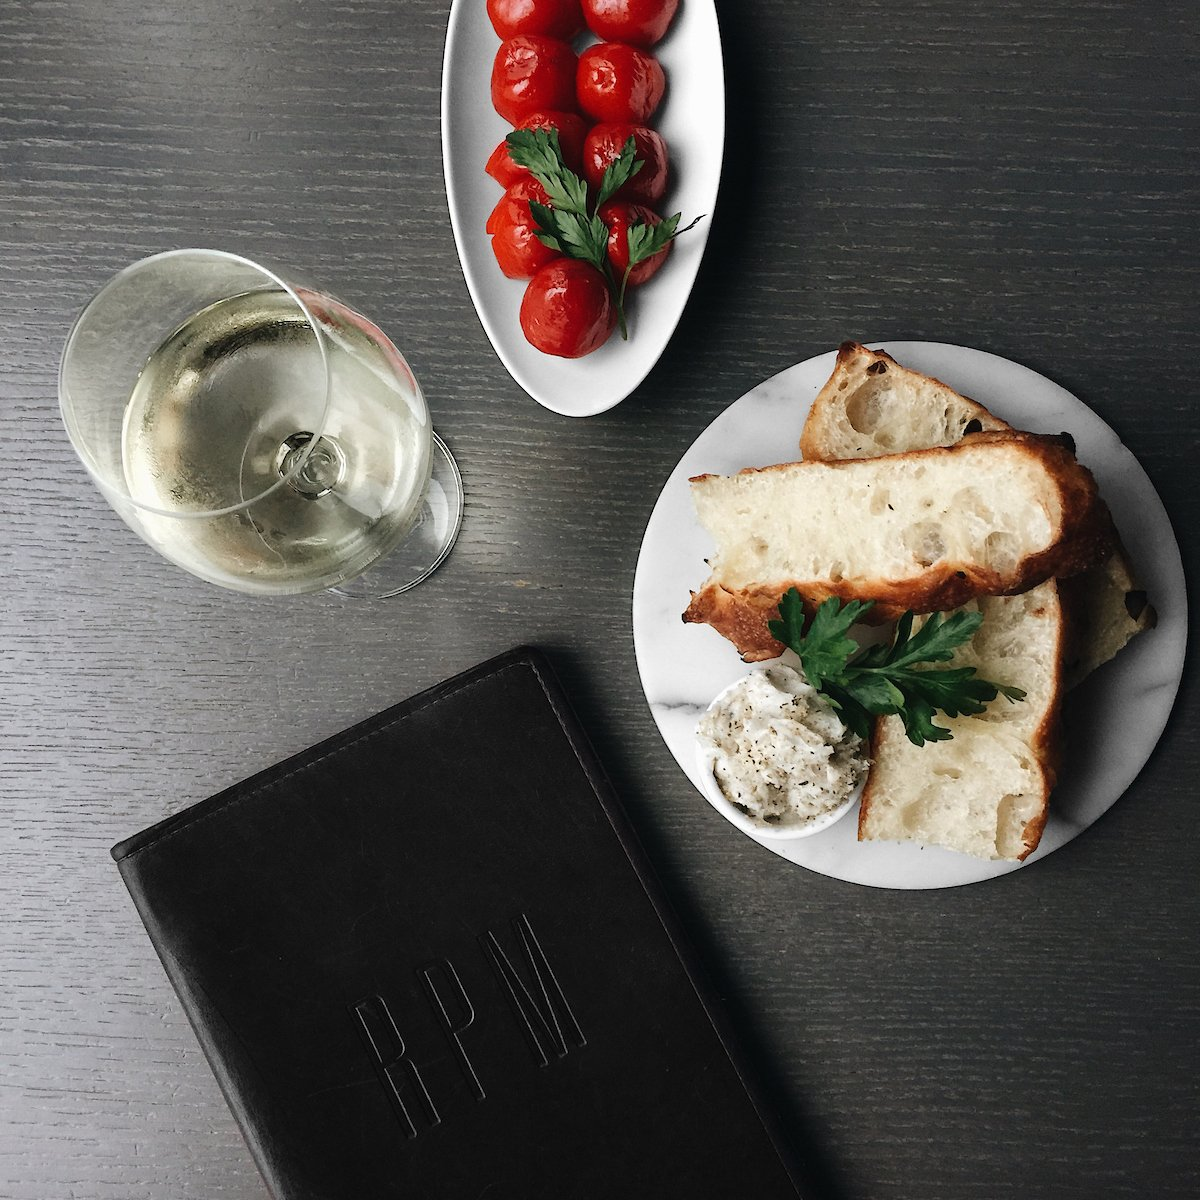 A great start to any meal: housemade Rosemary Focaccia with Whipped Lardo, Provolone-Stuffed Peppers and a glass of Antonio Mazzella Ischia from Italy's Campania region. https://t.co/H1PsJ03bXb